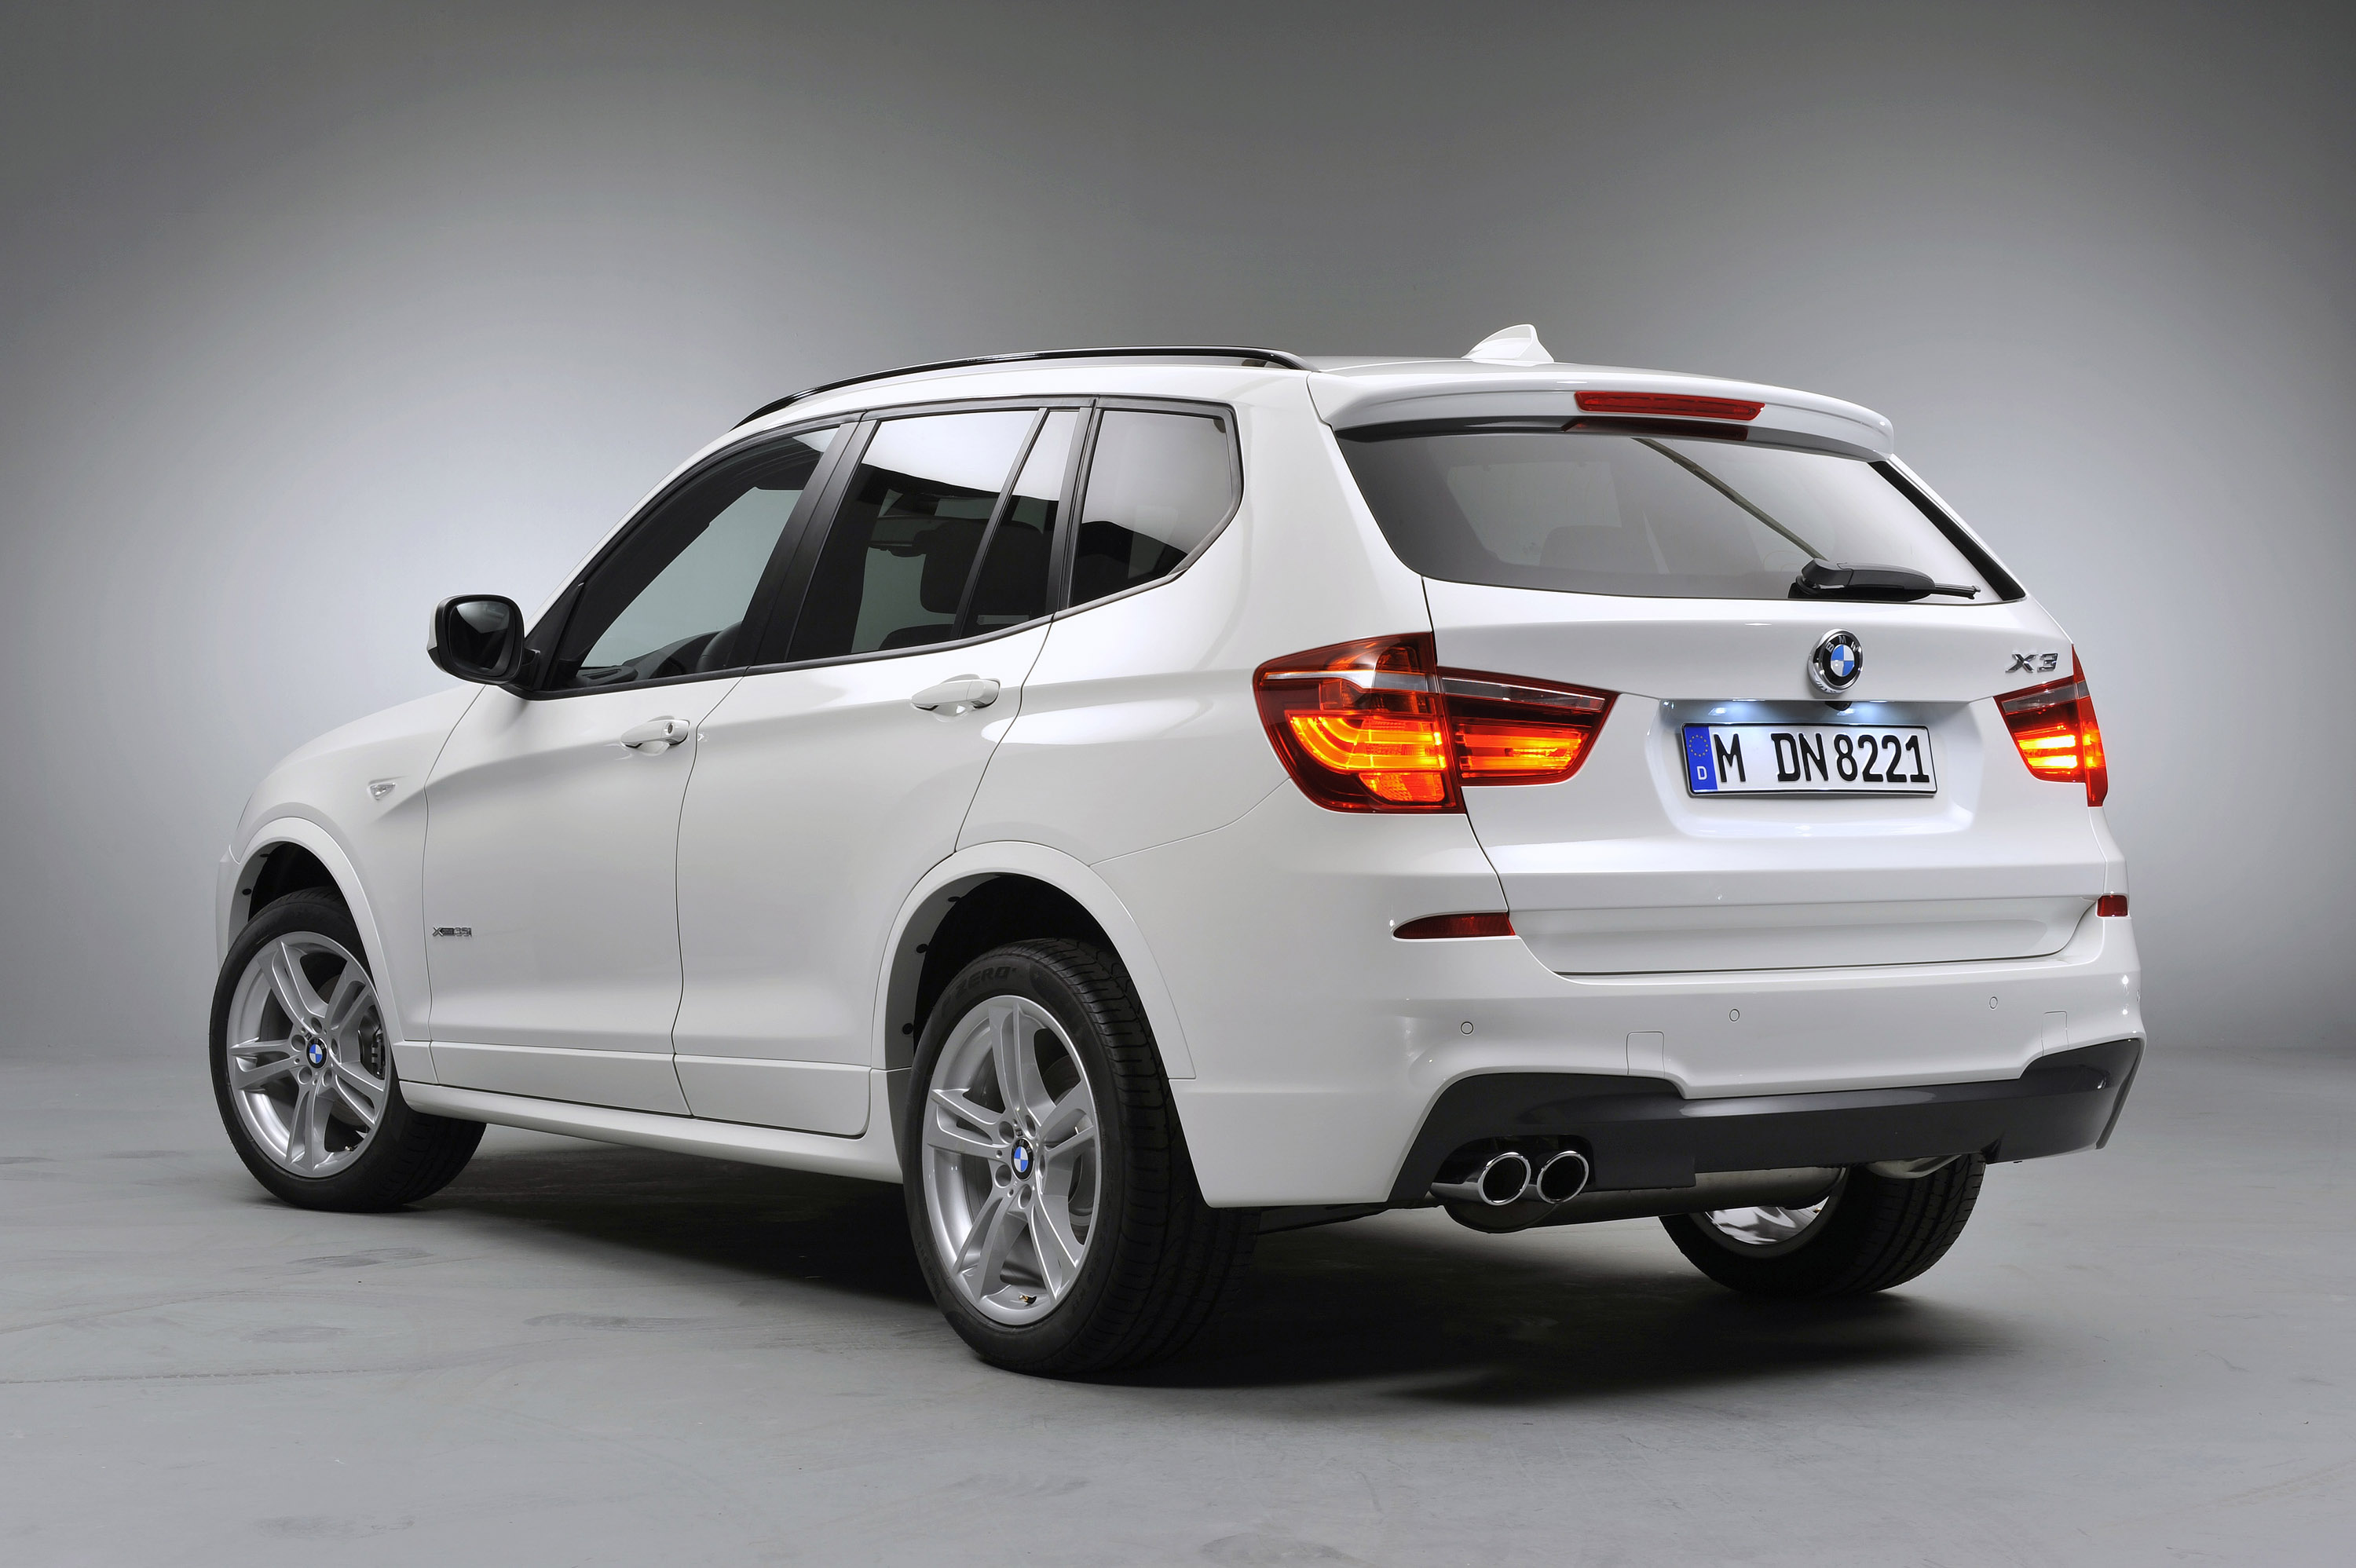 2011 Bmw X3 M Sports Package At The Paris Motor Show